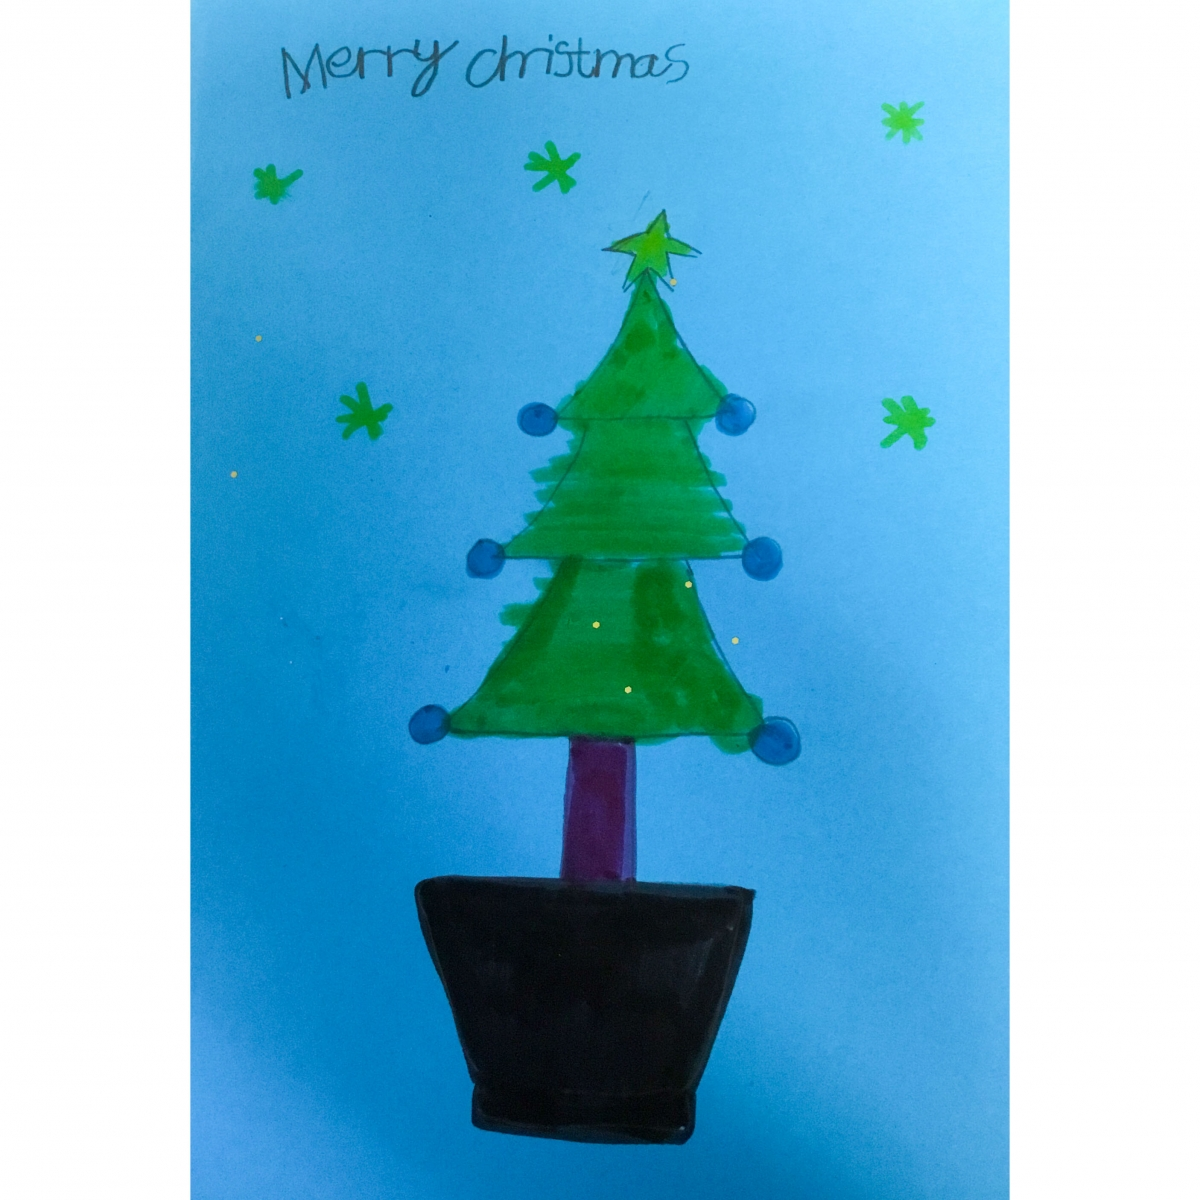 Send Christmas E-Cards designed by our students eCards